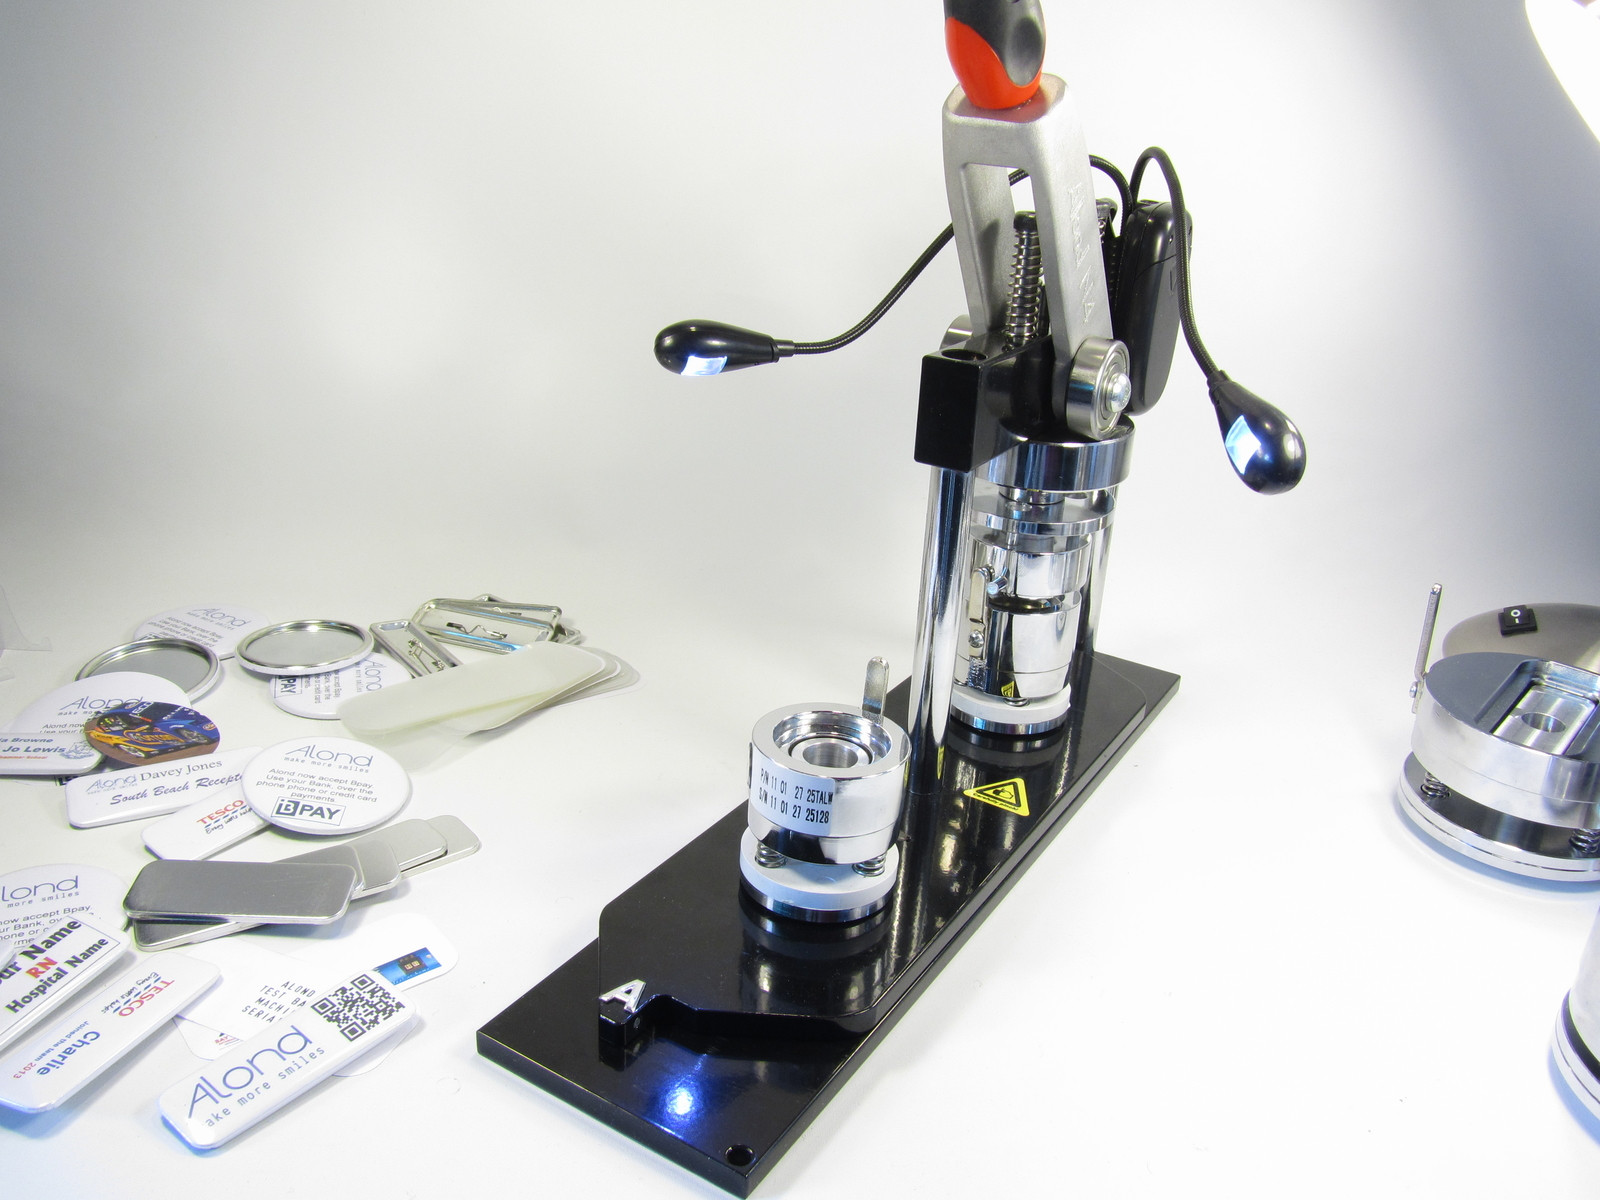 The Alond badge machine offers the largest range of accessories